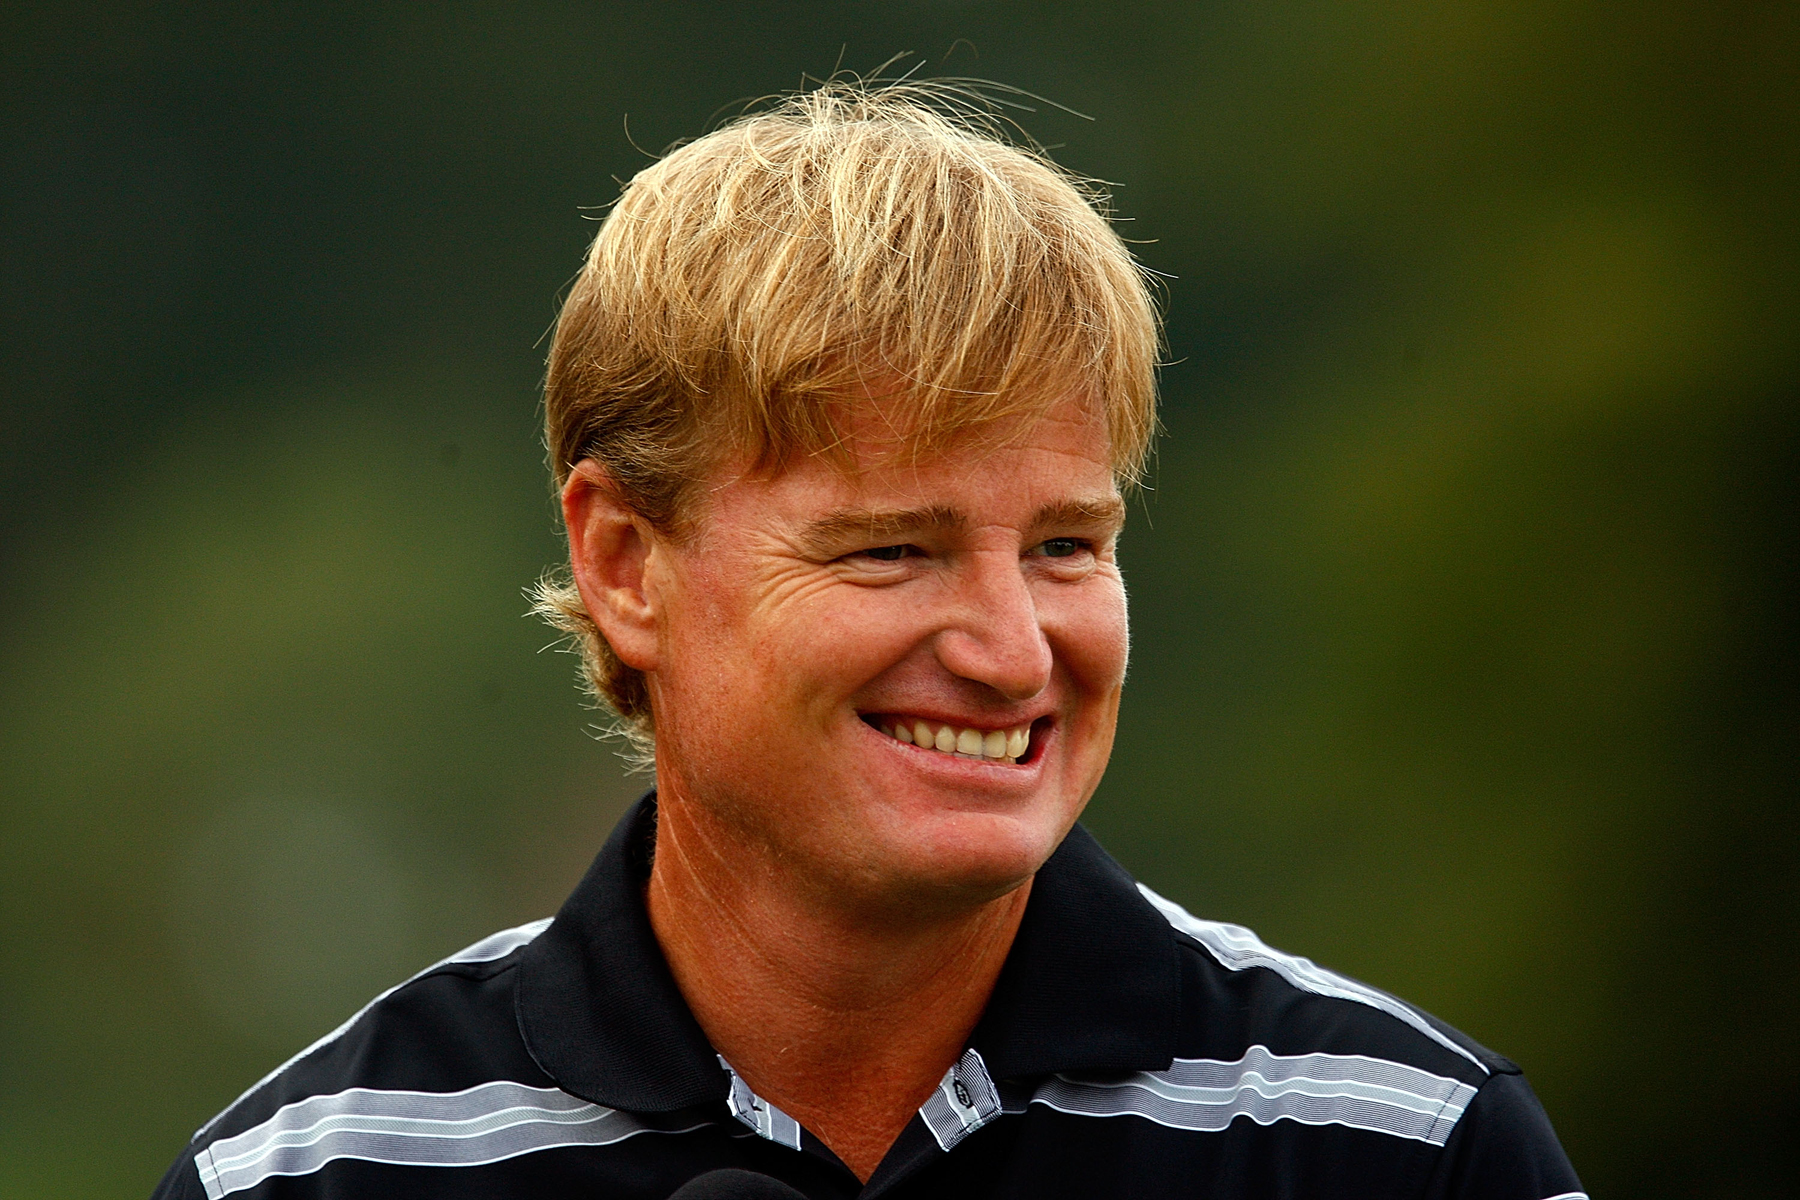 Ernie Els, seen here at the 2009 Tour Championship.